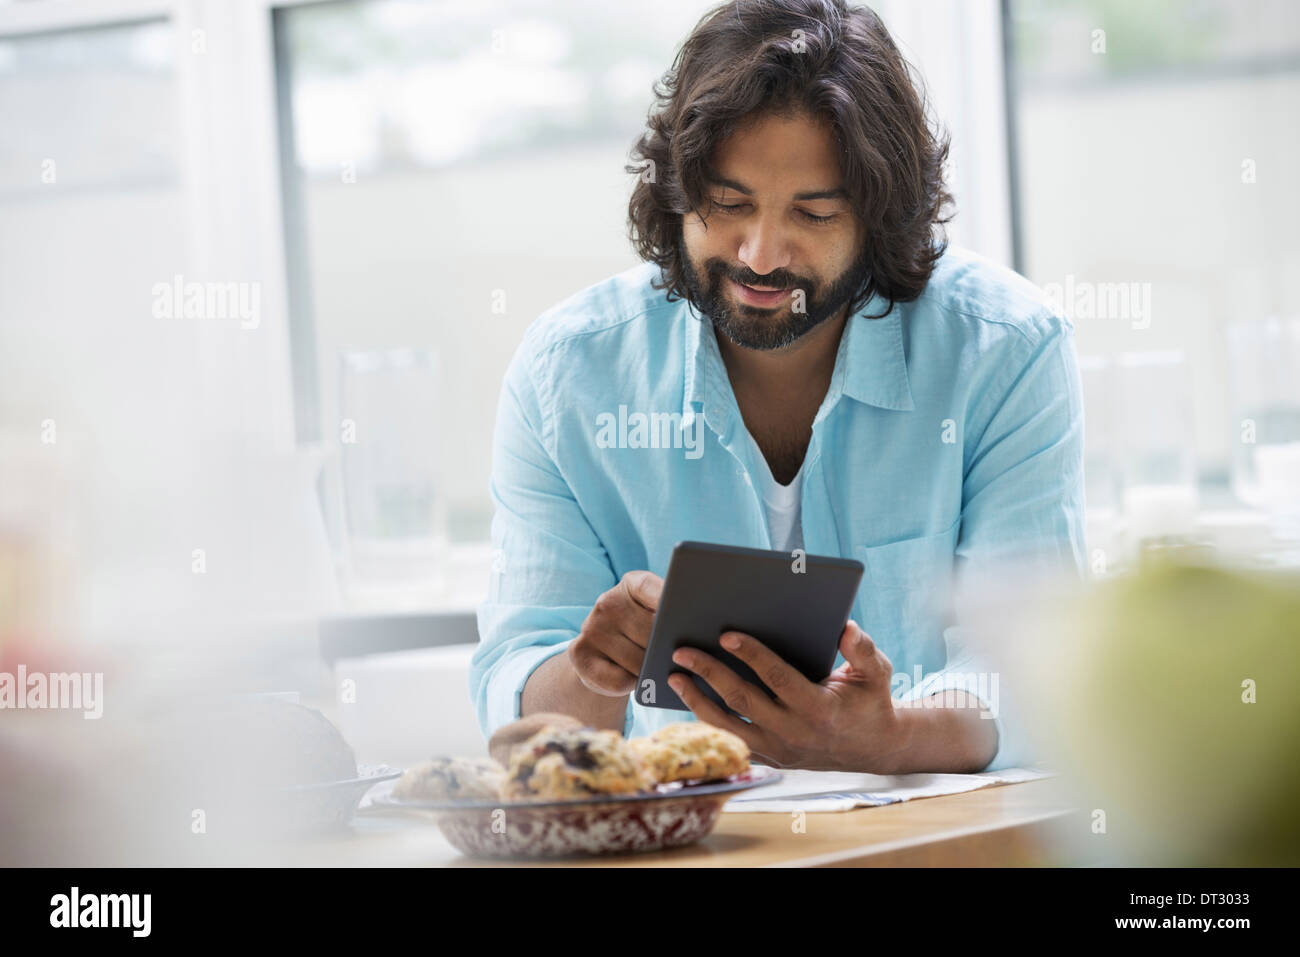 An office or apartment interior in New York City A bearded man in a turquoise shirt using a digital tablet - Stock Image